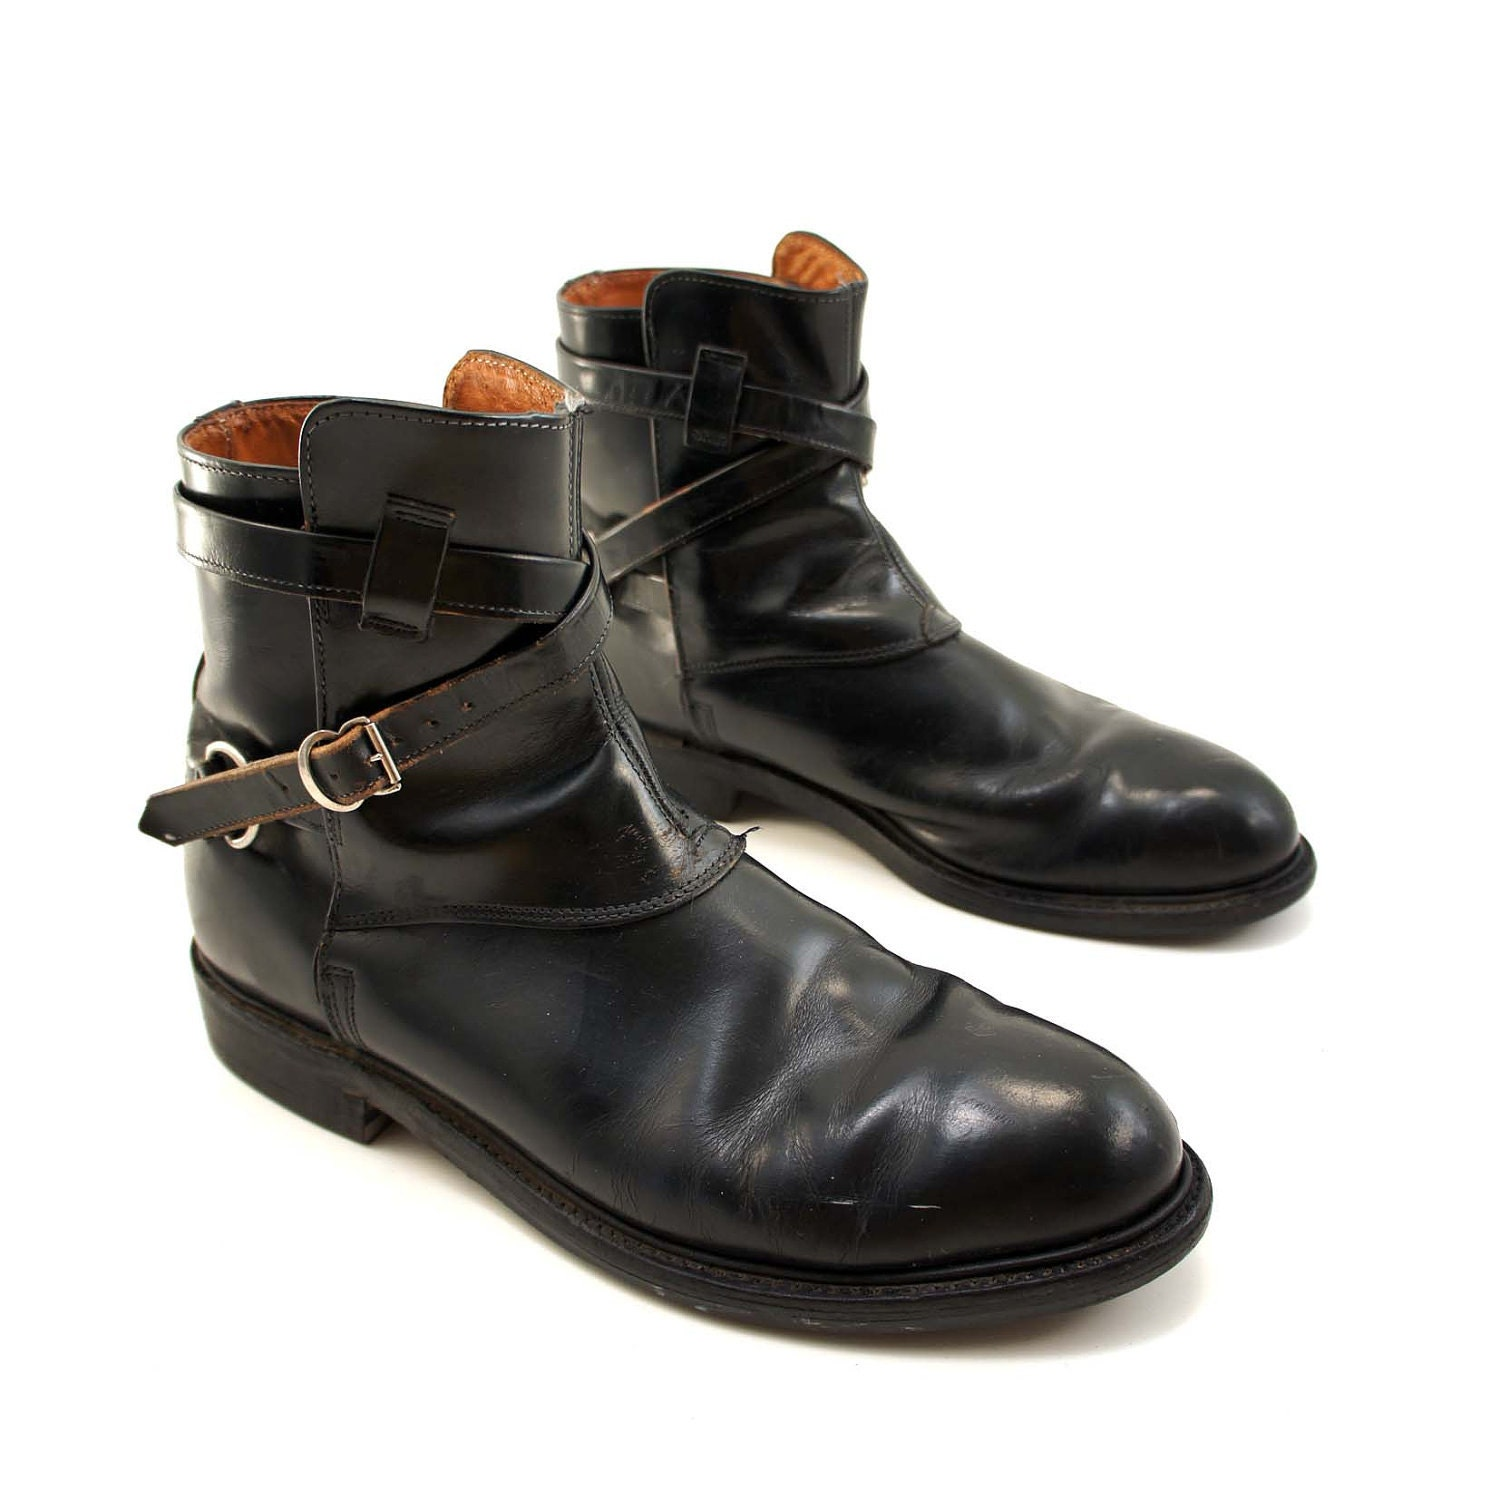 Find great deals on eBay for boots with straps. Shop with confidence.